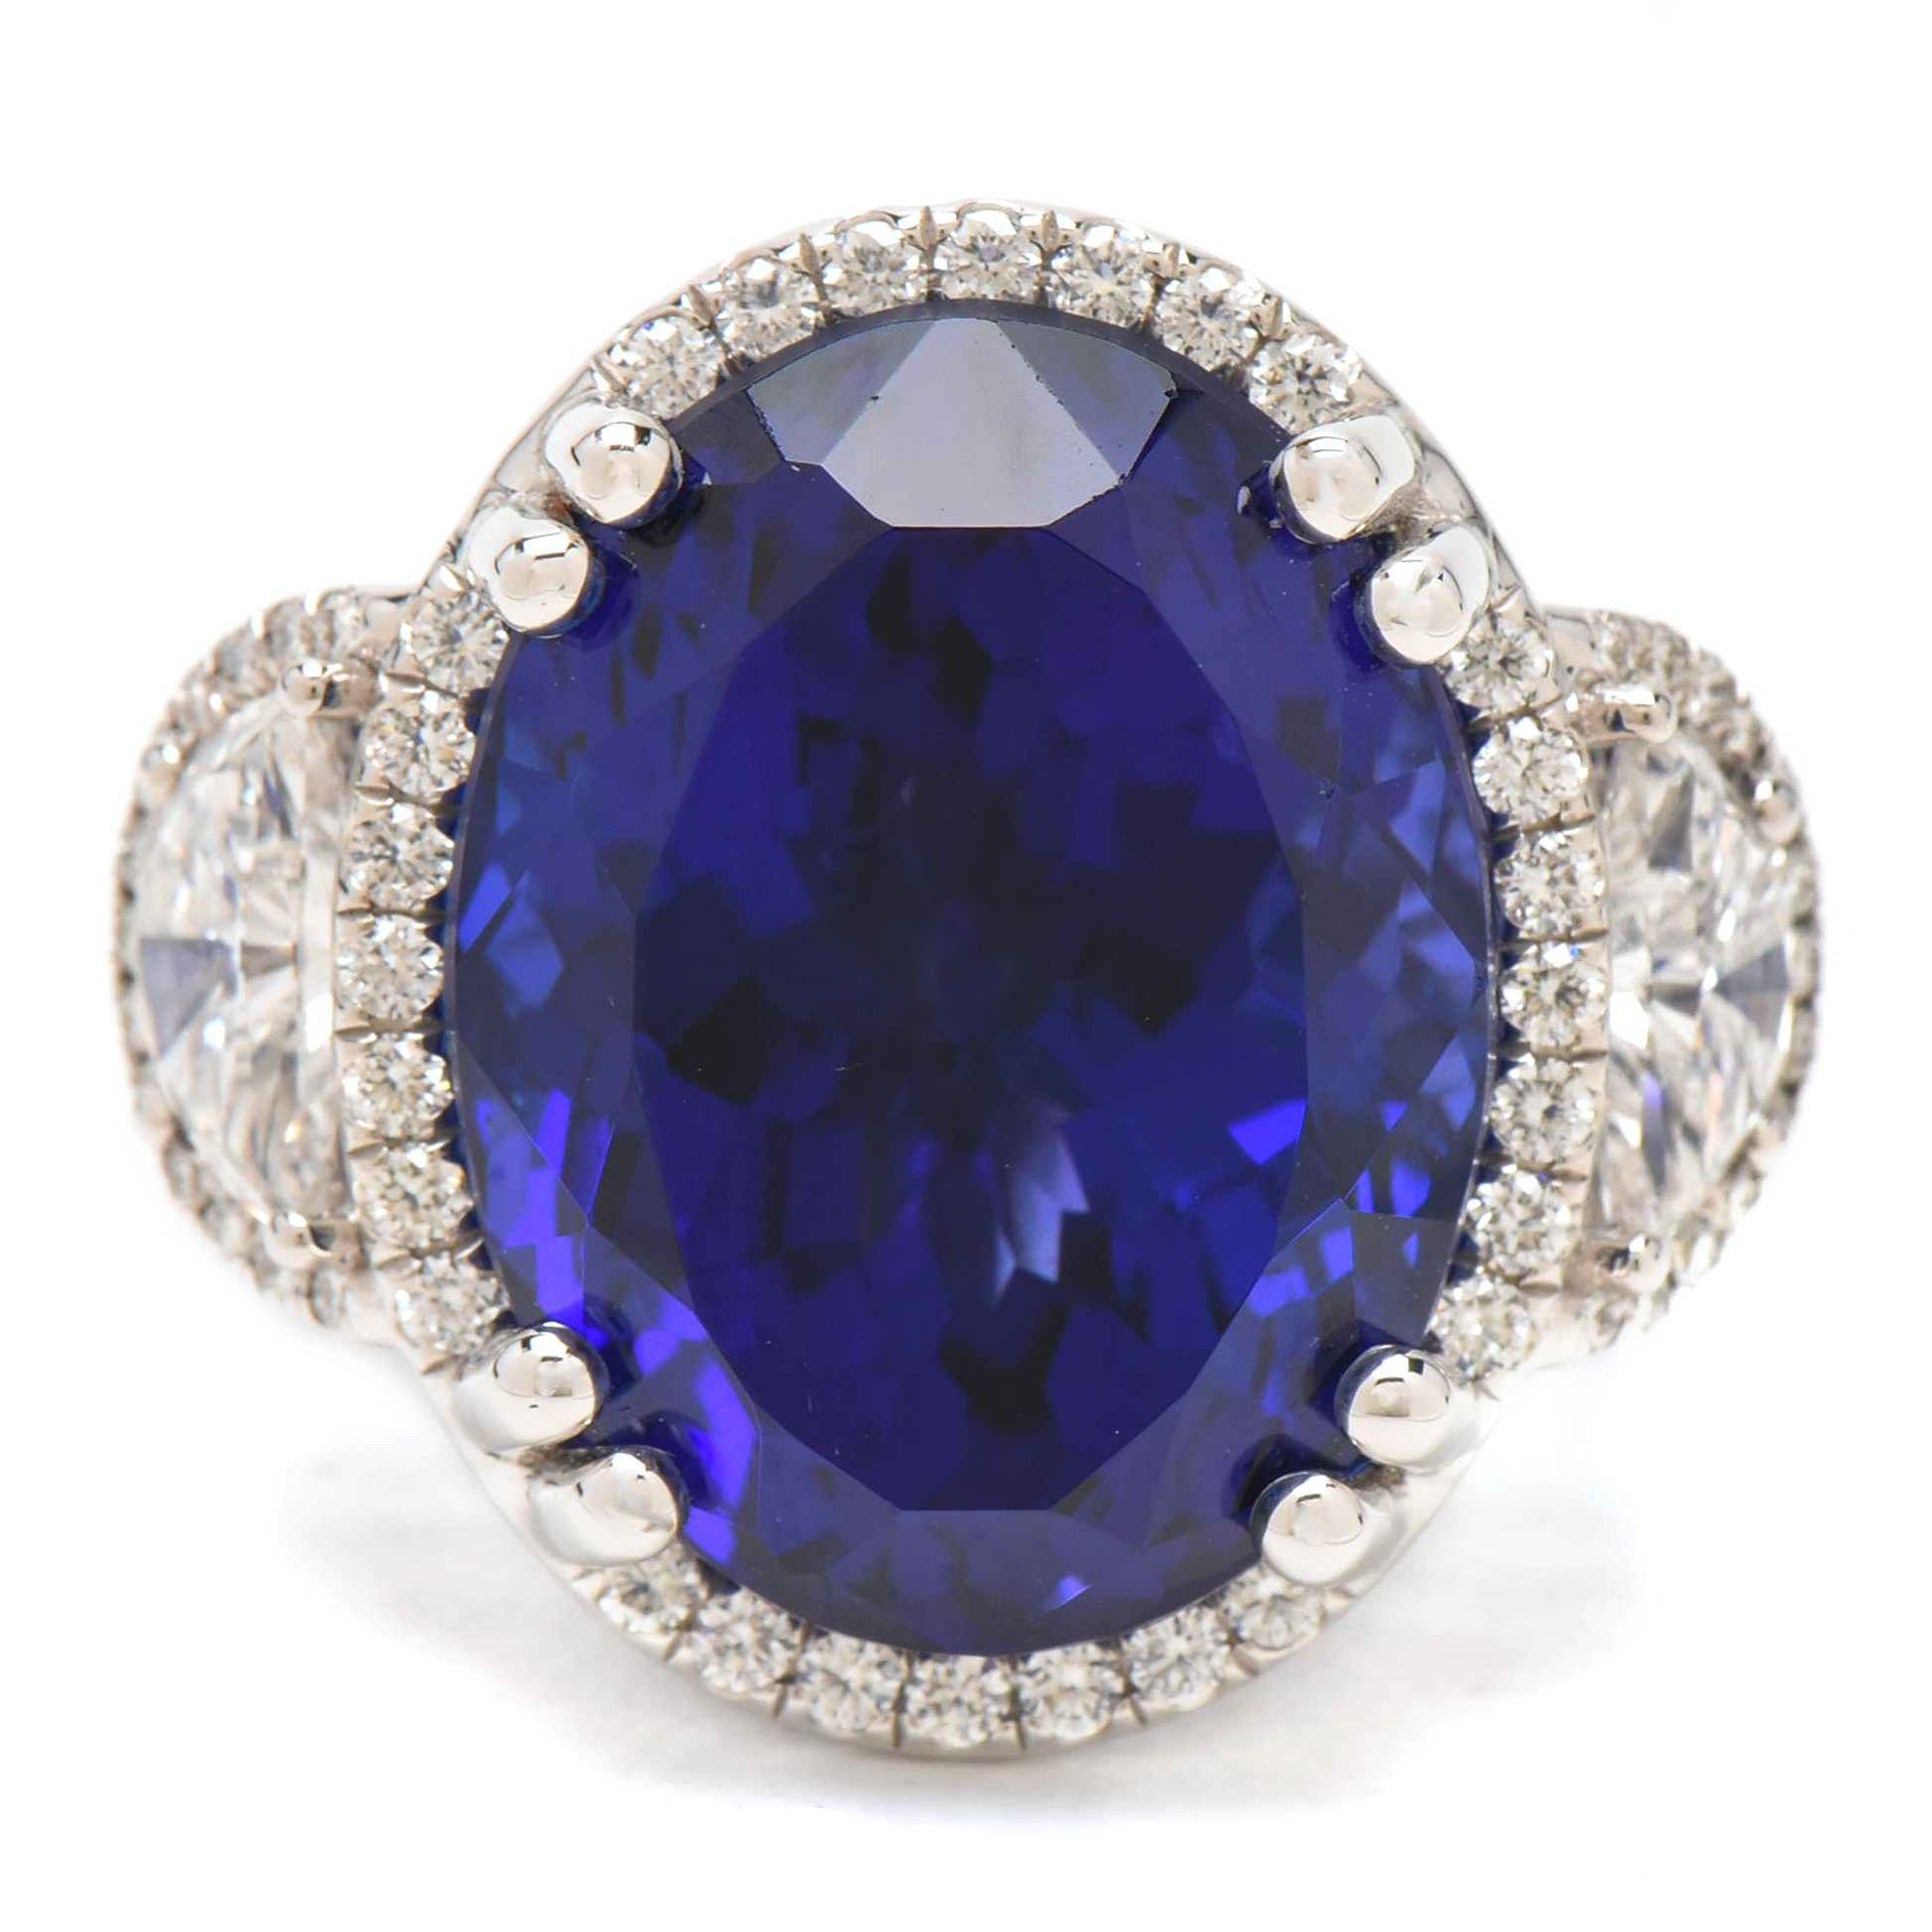 18K White Gold 25.78 CT Tanzanite & 2.14 CTW Diamond Ring with AGL & GIA Report